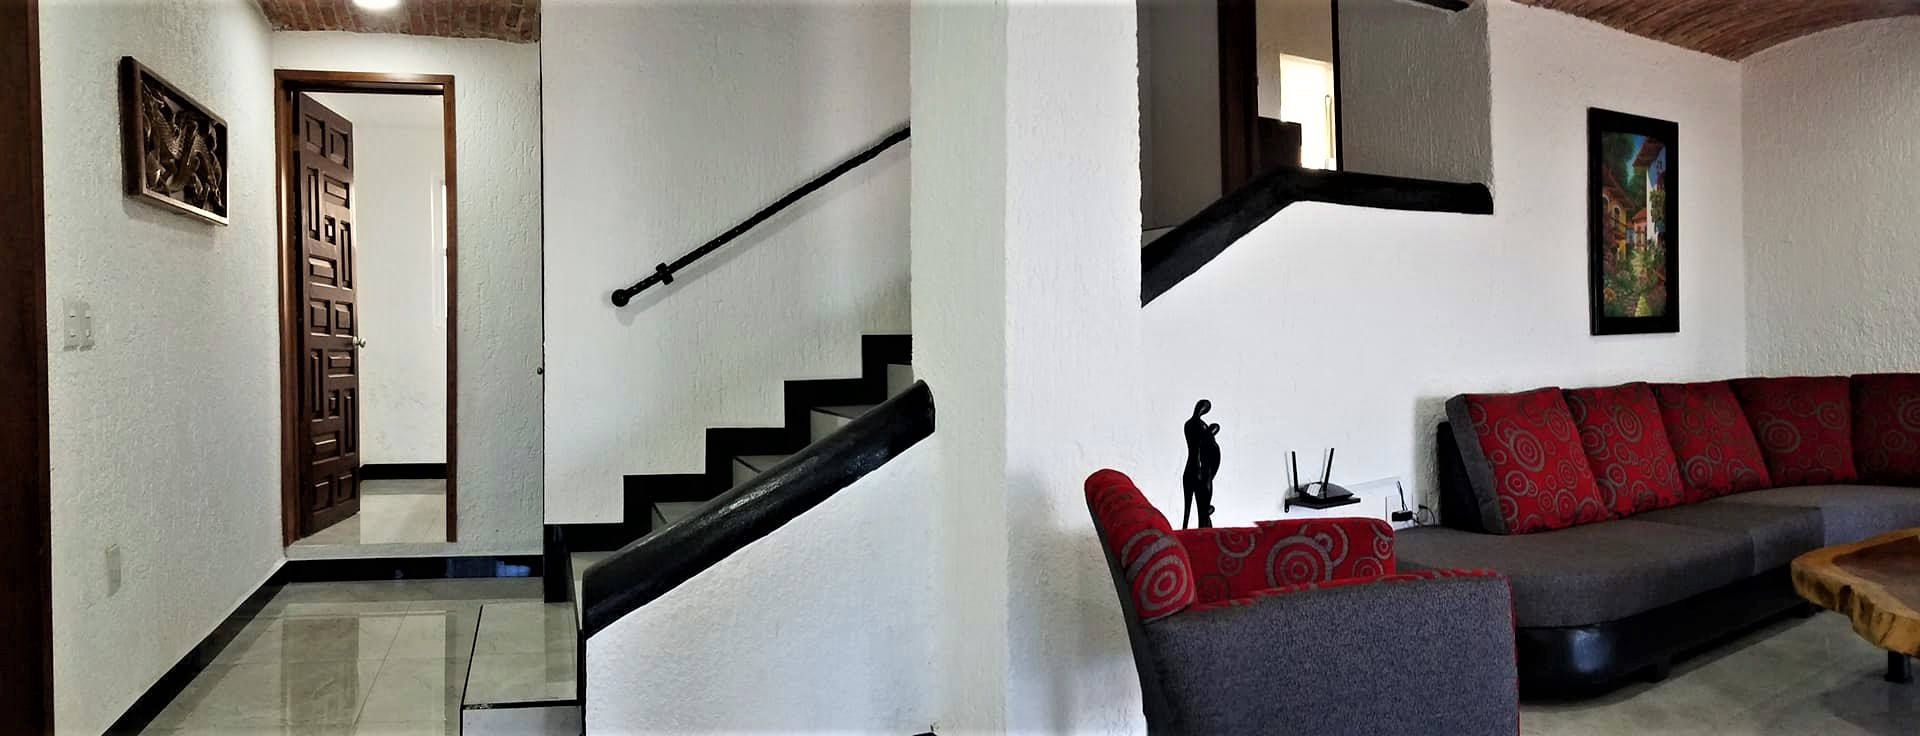 Living room with stairs view (2).jpg